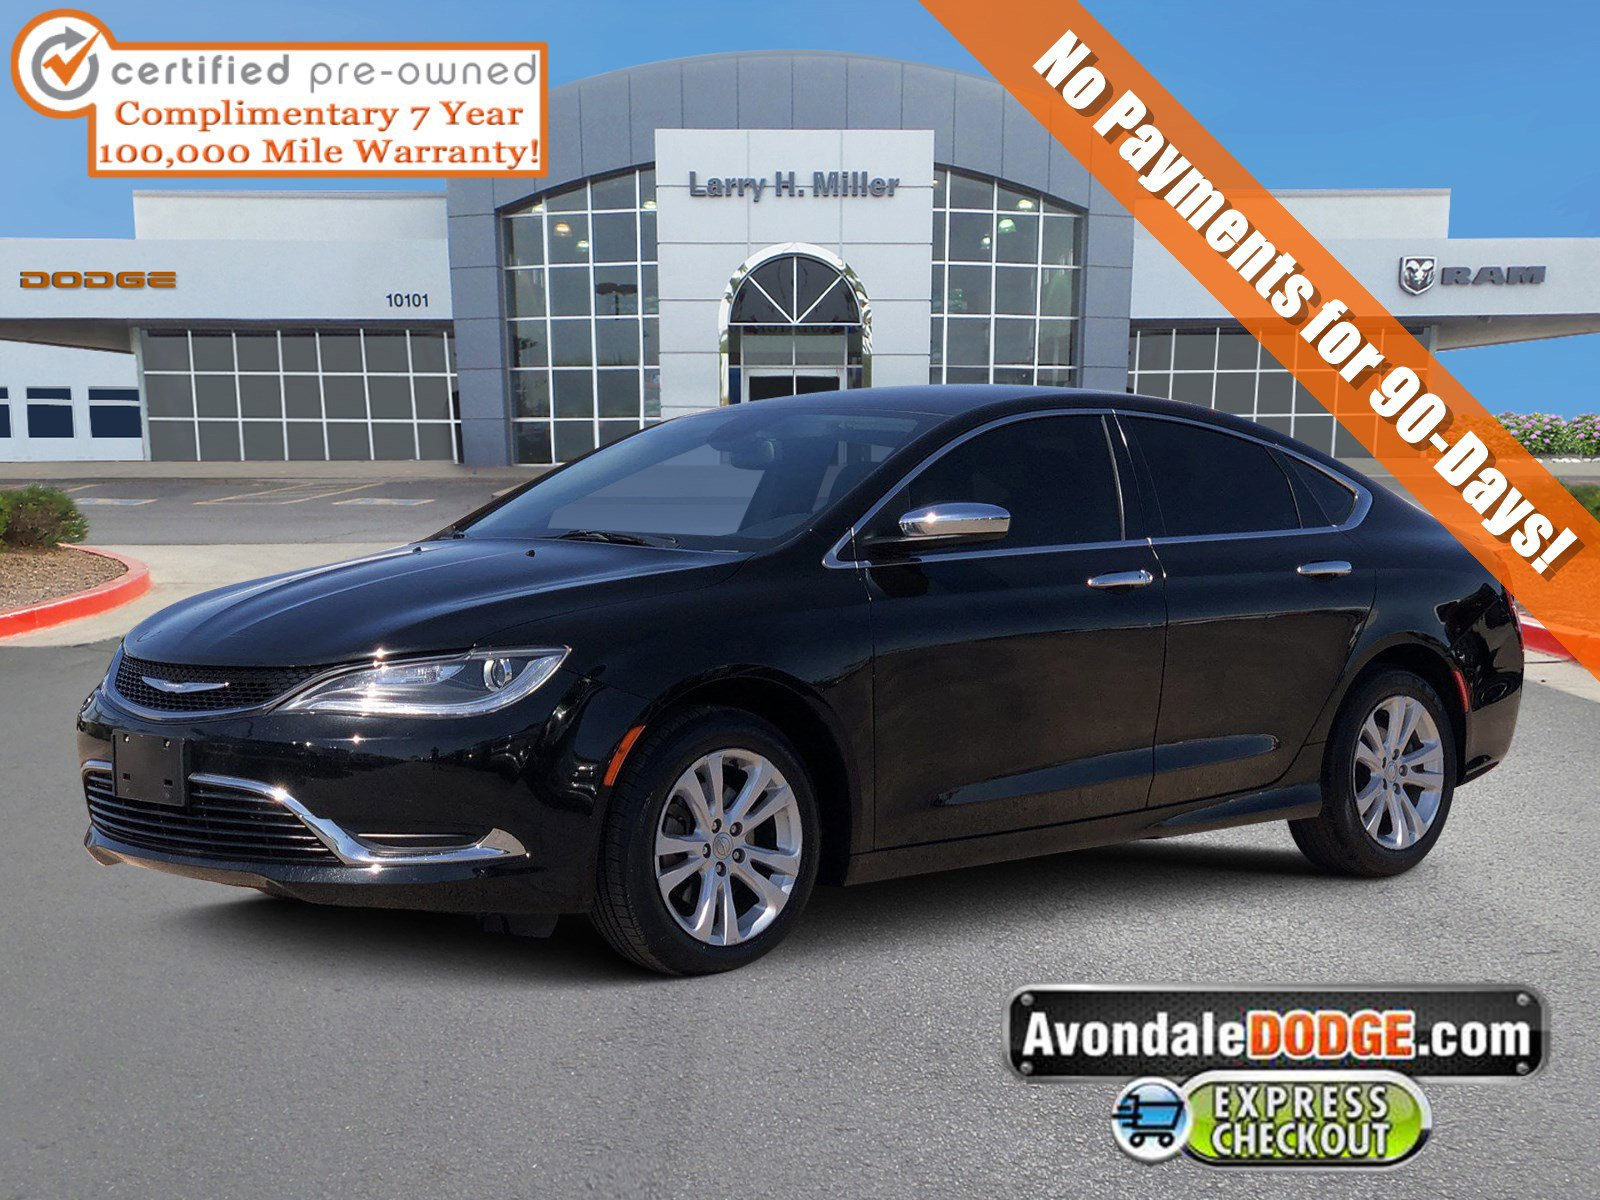 2016 Chrysler 200 Limited w/ Convenience Group image